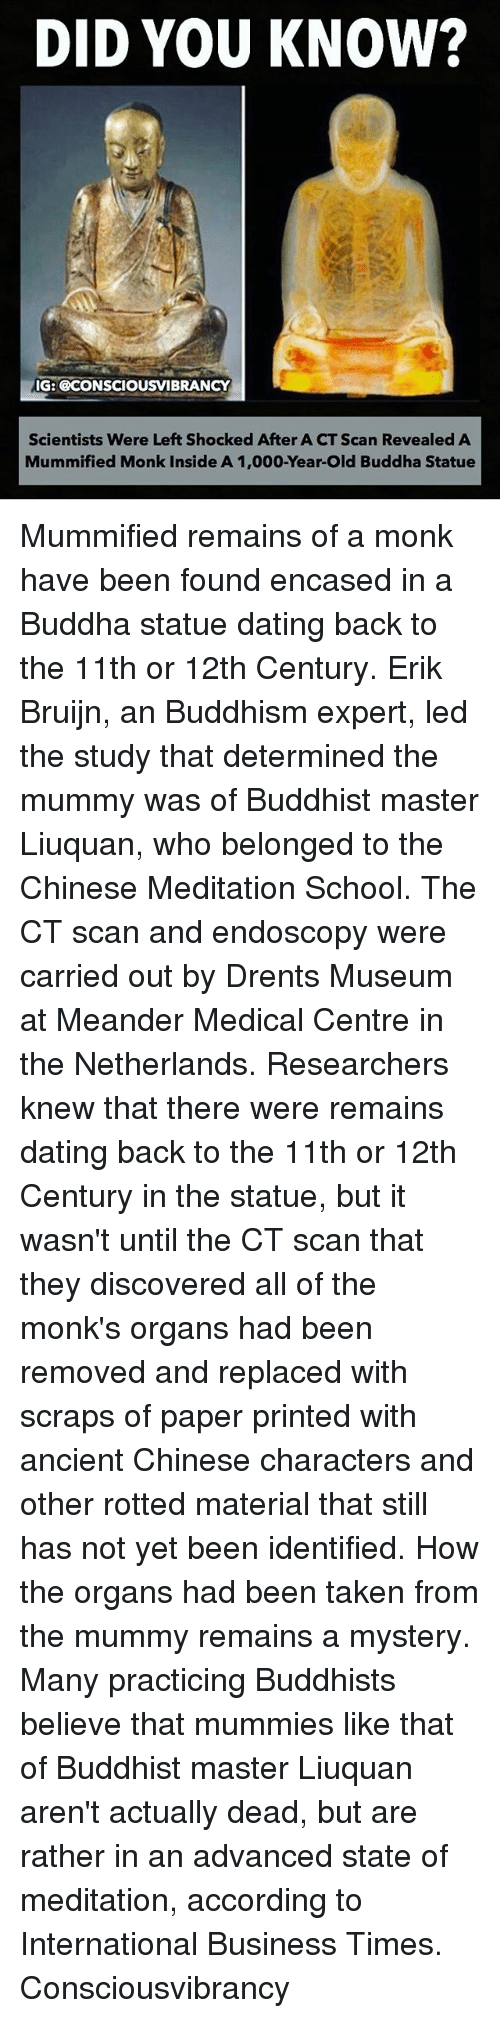 the mummy: DID YOU KNOW?  IG: BCONSCIOUSVIBRANCY  Scientists Were Left Shocked After A CT Scan Revealed A  Mummified Monk Inside A 1,000-Year-Old Buddha Statue Mummified remains of a monk have been found encased in a Buddha statue dating back to the 11th or 12th Century. Erik Bruijn, an Buddhism expert, led the study that determined the mummy was of Buddhist master Liuquan, who belonged to the Chinese Meditation School. The CT scan and endoscopy were carried out by Drents Museum at Meander Medical Centre in the Netherlands. Researchers knew that there were remains dating back to the 11th or 12th Century in the statue, but it wasn't until the CT scan that they discovered all of the monk's organs had been removed and replaced with scraps of paper printed with ancient Chinese characters and other rotted material that still has not yet been identified. How the organs had been taken from the mummy remains a mystery. Many practicing Buddhists believe that mummies like that of Buddhist master Liuquan aren't actually dead, but are rather in an advanced state of meditation, according to International Business Times. Consciousvibrancy